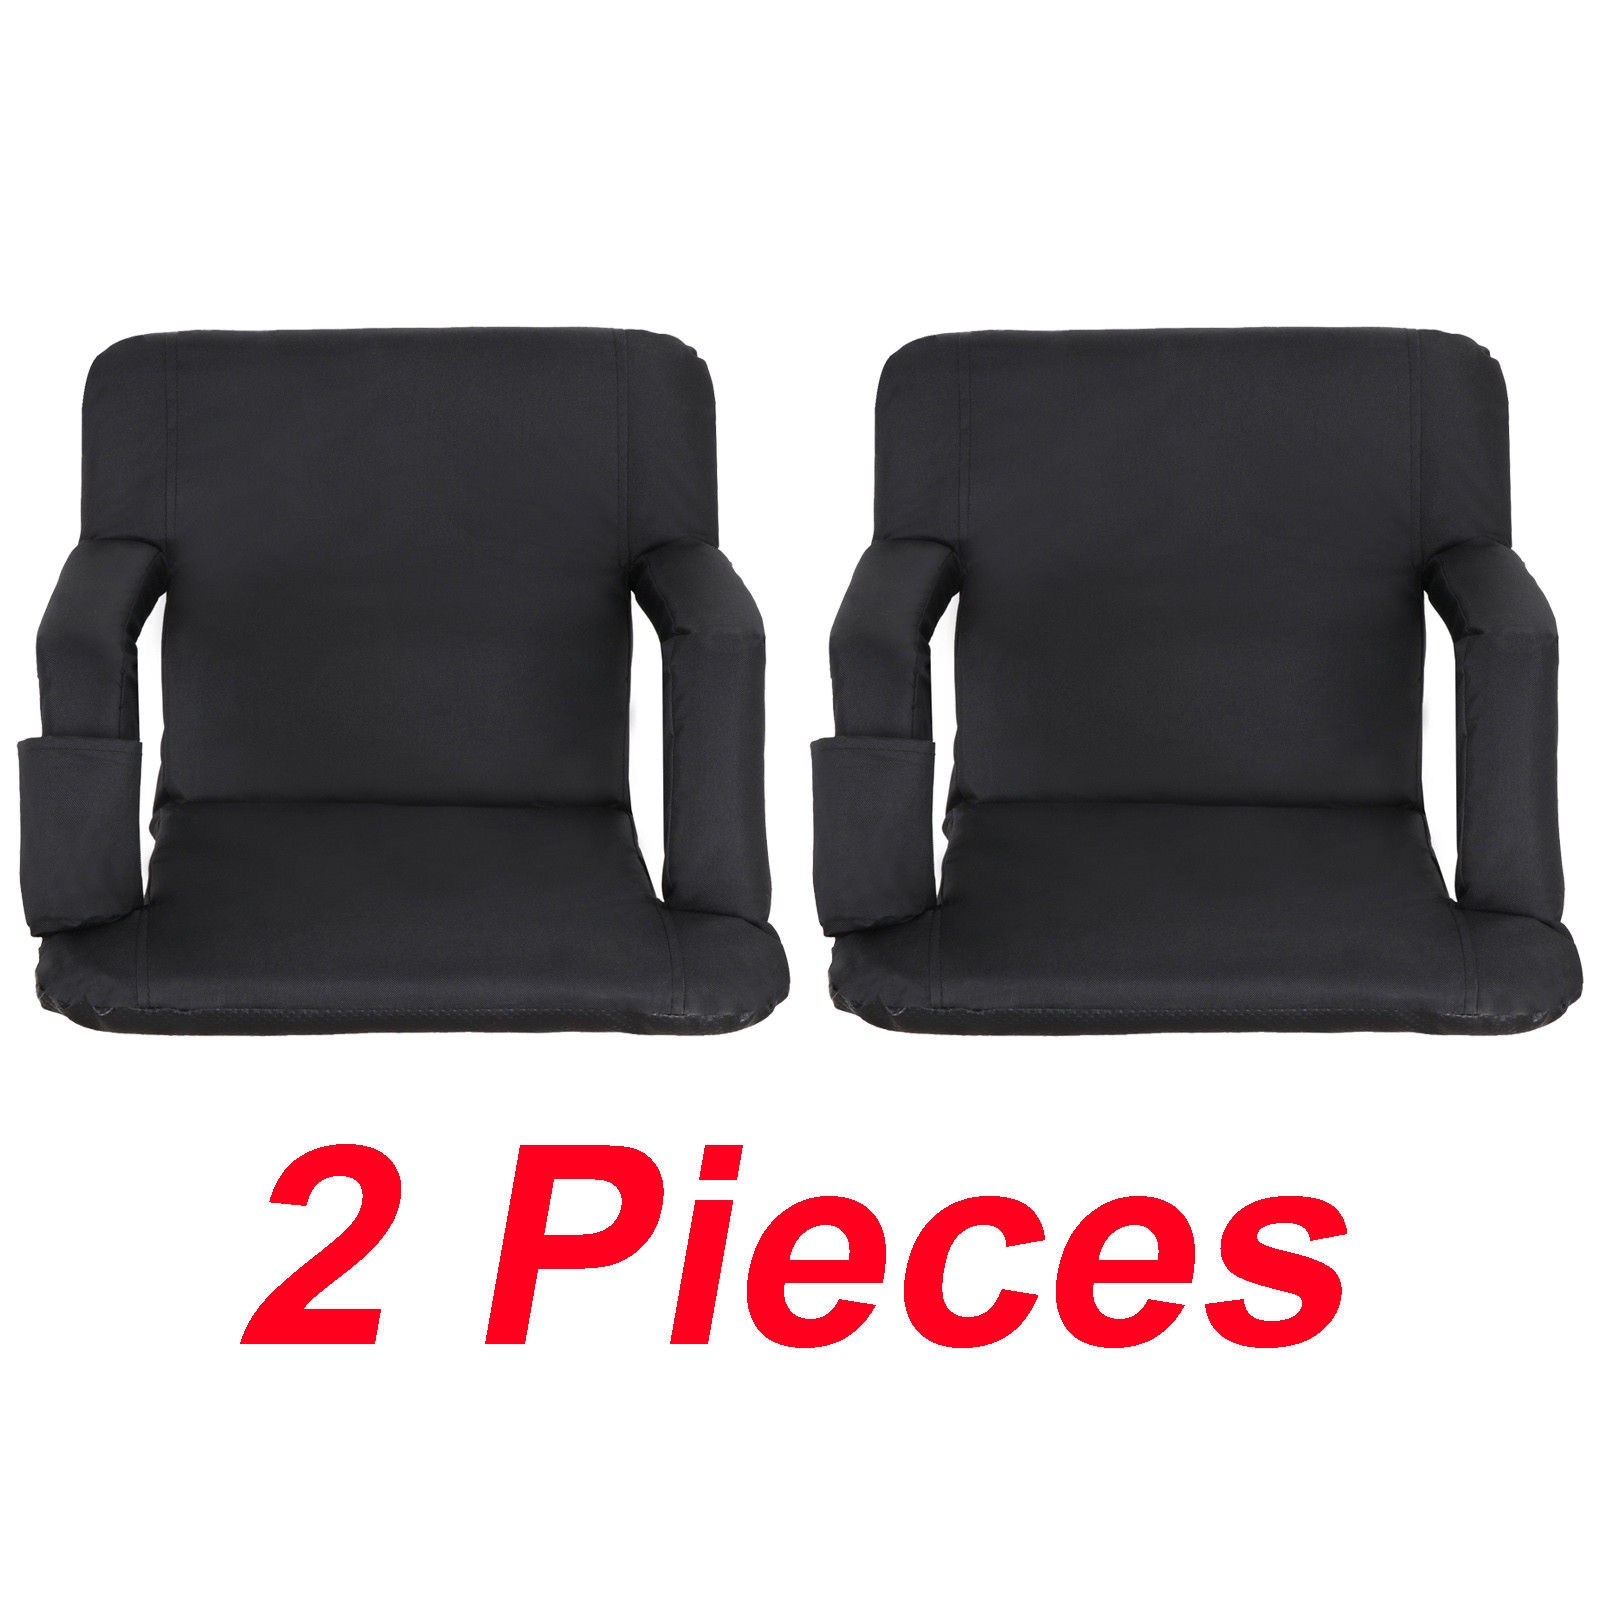 Zeny Set of 2 Portable Stadium Seat Chair, Reclining Seat Black Bleachers 5 Positions by